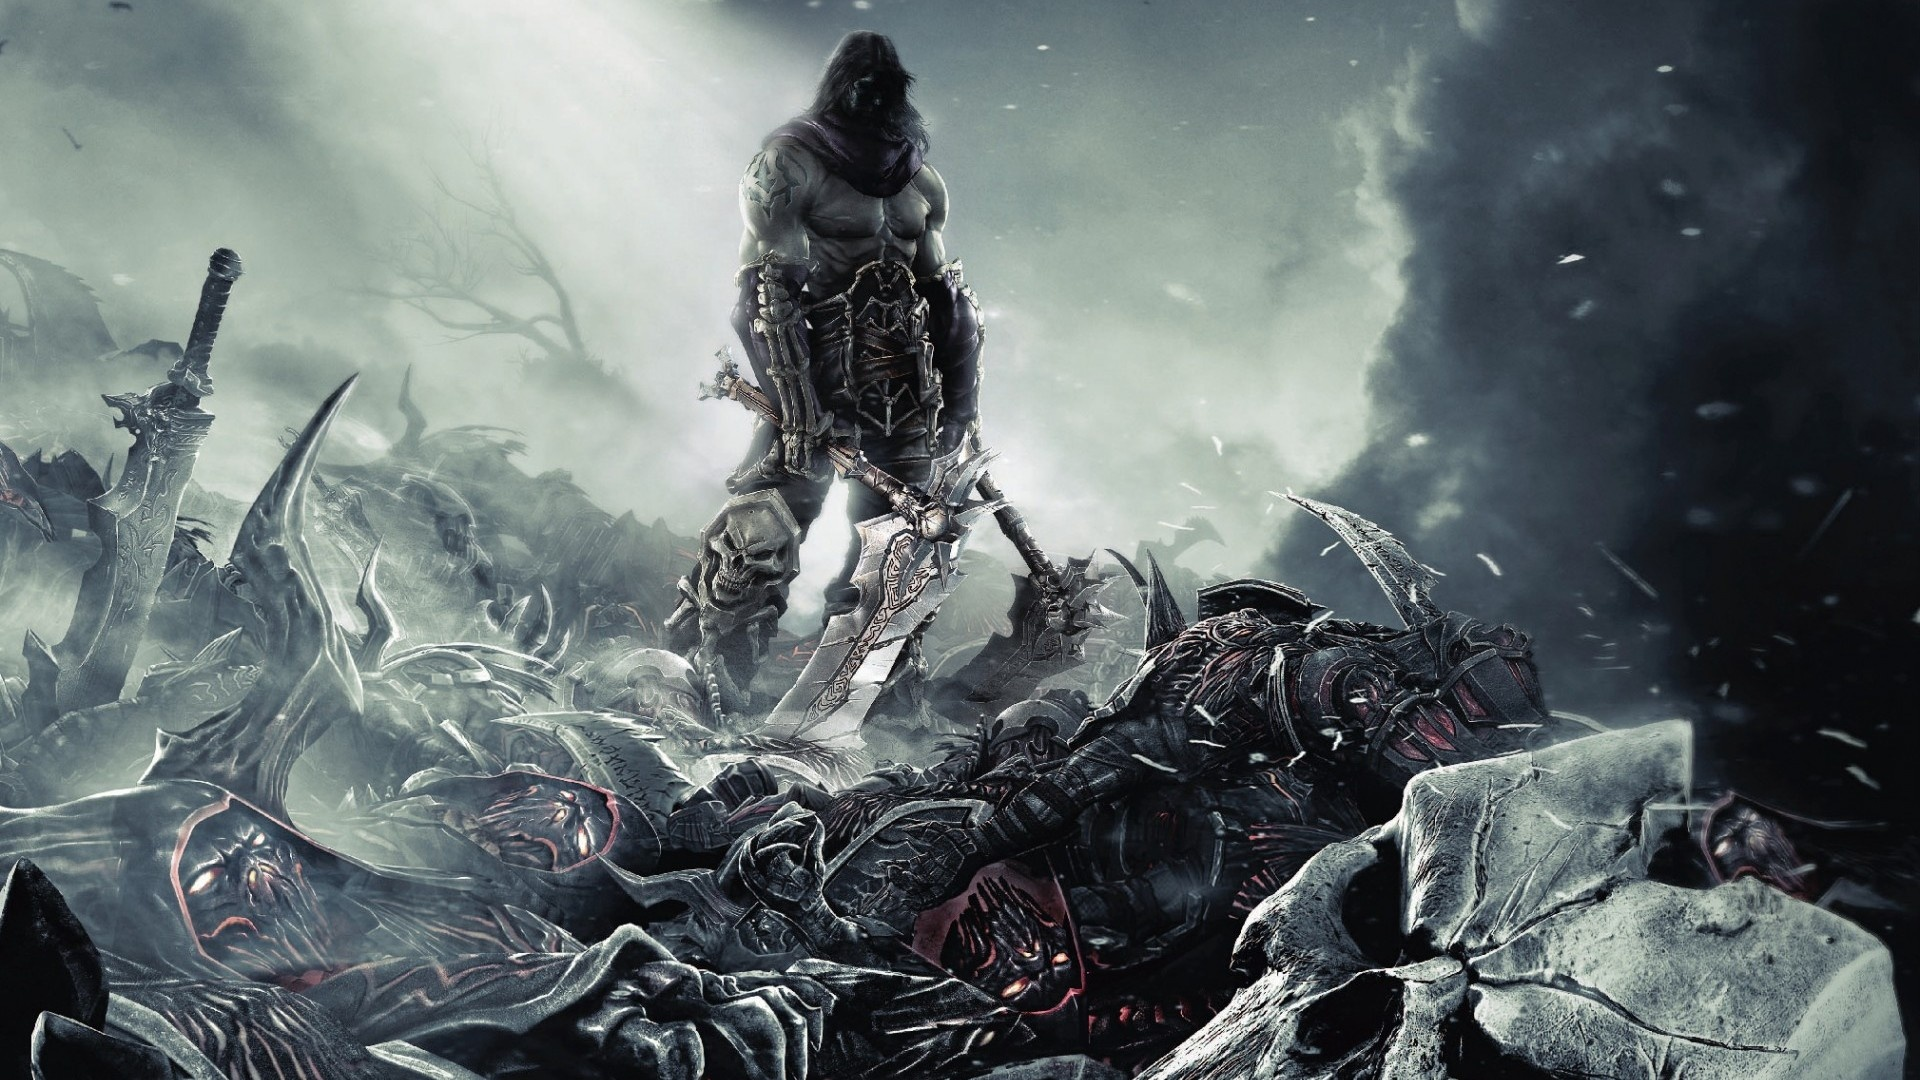 Darksiders 2 Background 1920 x 1080 Download Close 1920x1080